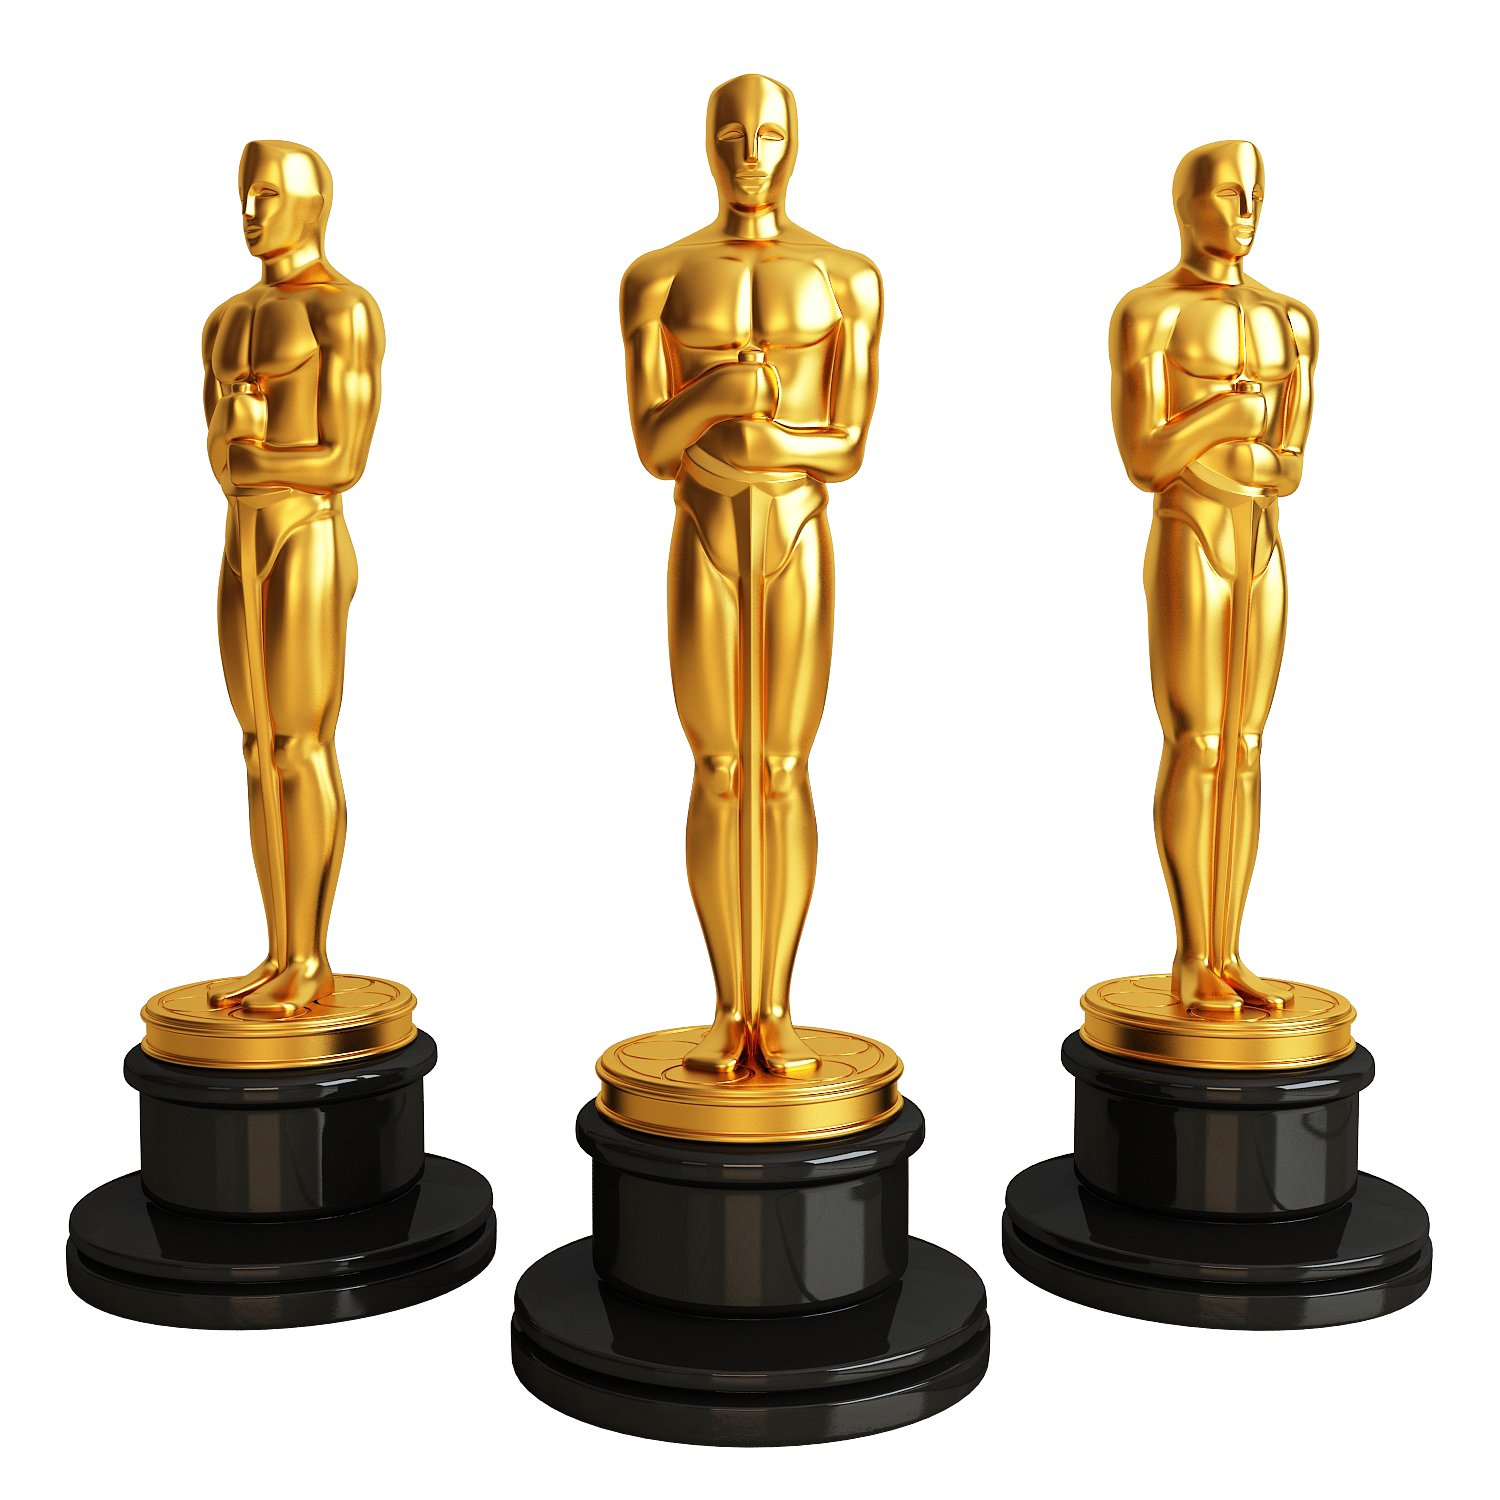 8x15 Step Repeat Backdrop additionally Thecreativesideofthings wordpress further Obama Allies Ukraine n 4886880 likewise Oscar Trophy Silhouette moreover Photo. on oscar award cut out template